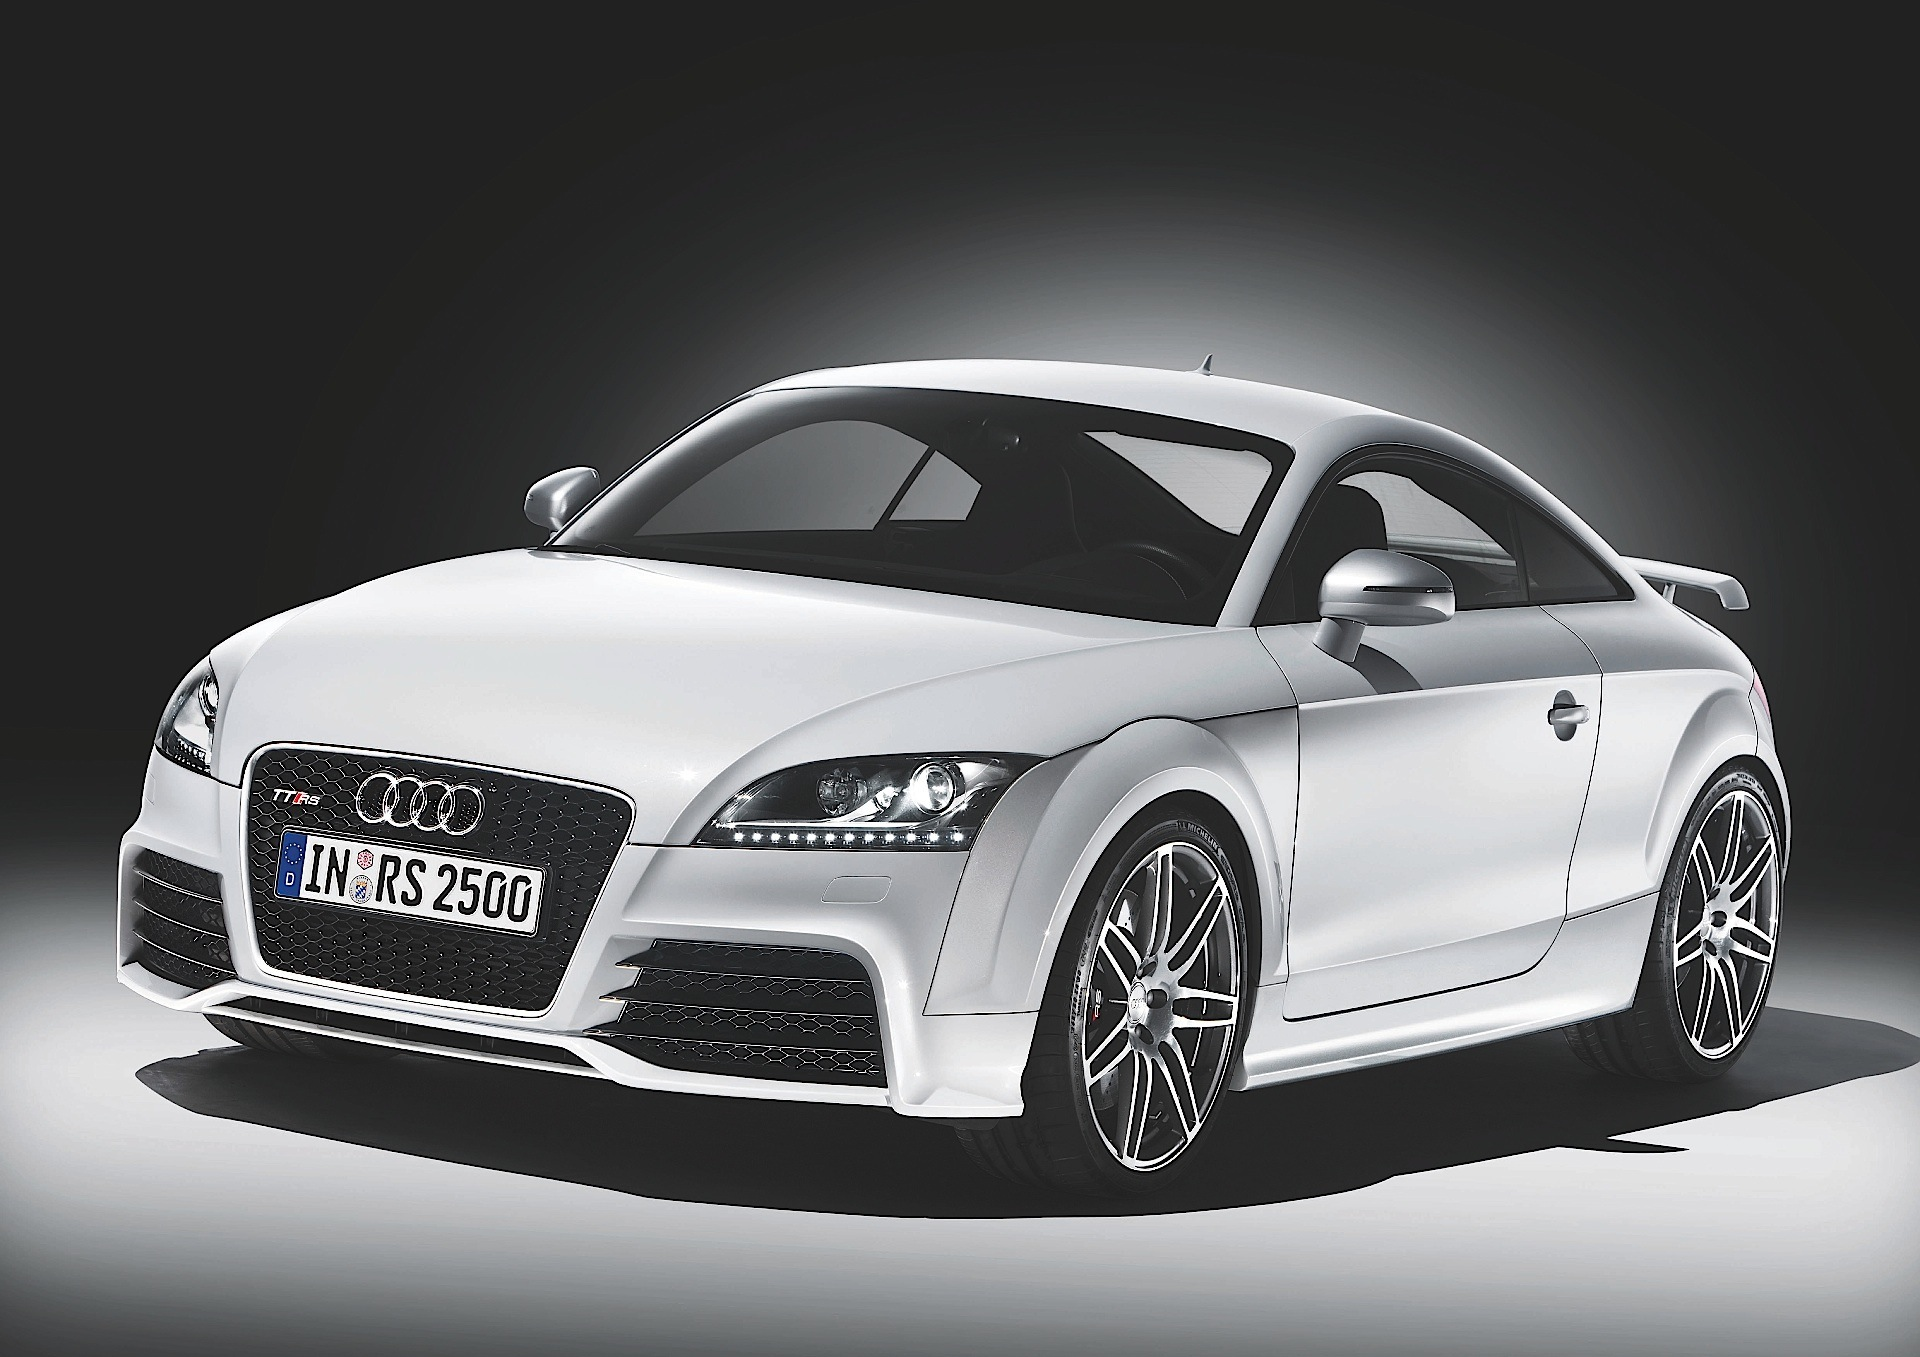 audi tt rs coupe 2009 2010 2011 2012 2013 2014 autoevolution. Black Bedroom Furniture Sets. Home Design Ideas